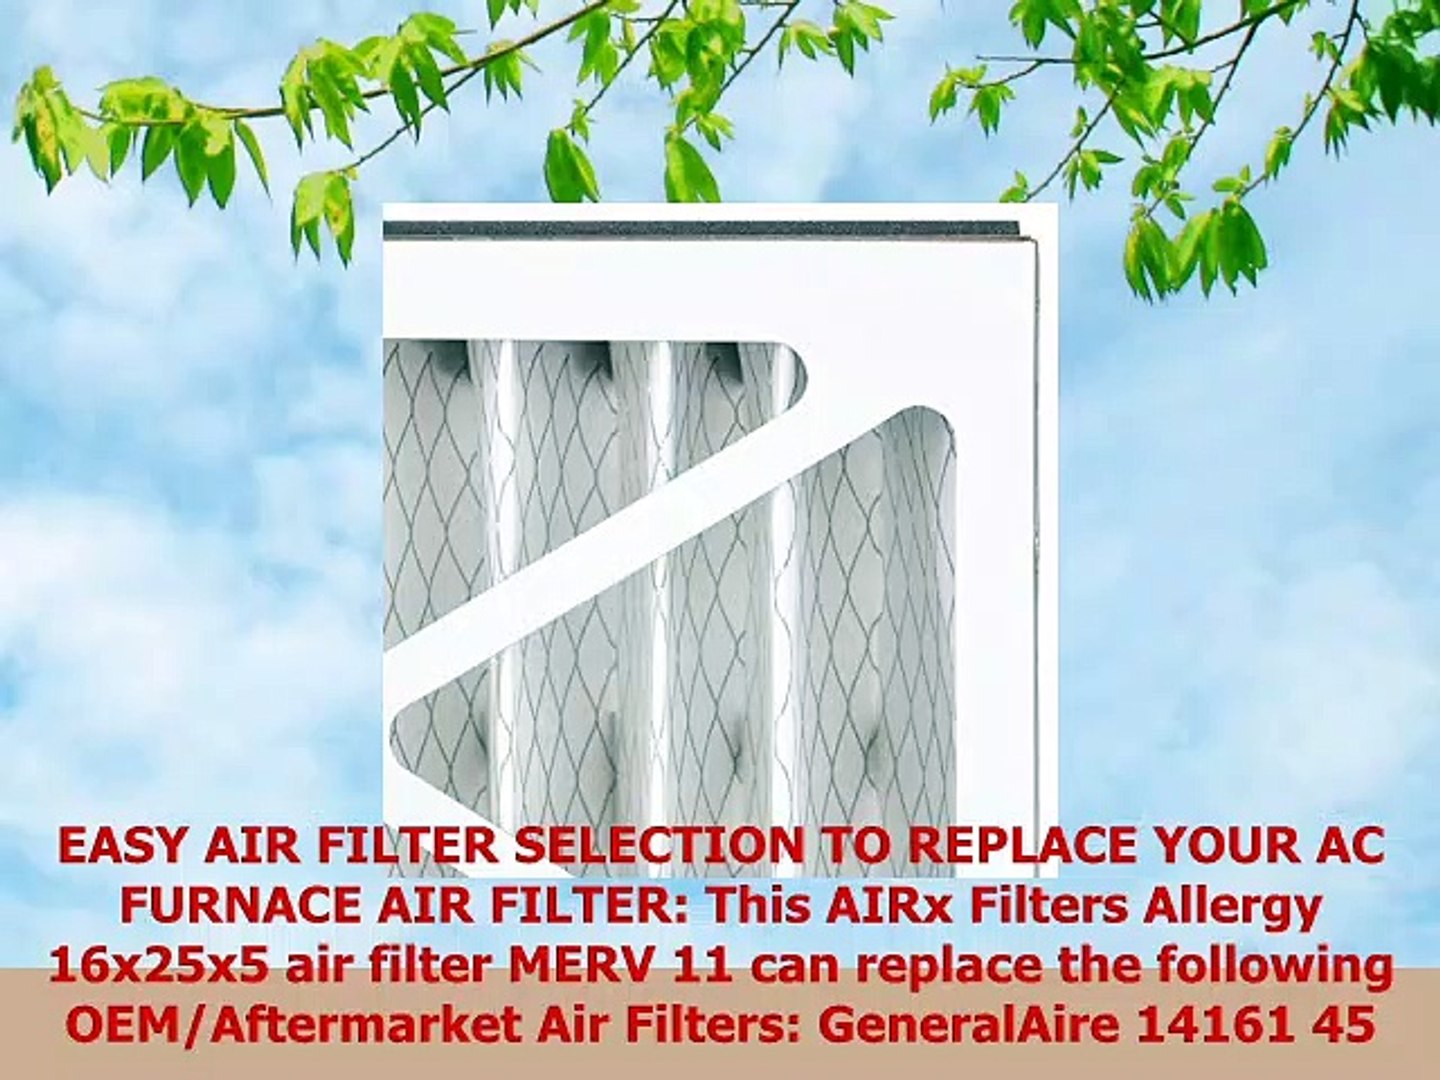 Made in the USA Dust 2-Pack AIRx Filters 16x25x5 MERV 8 HVAC AC Furnace Air Filter Replacement for Lennox X0583 X6670 X6672